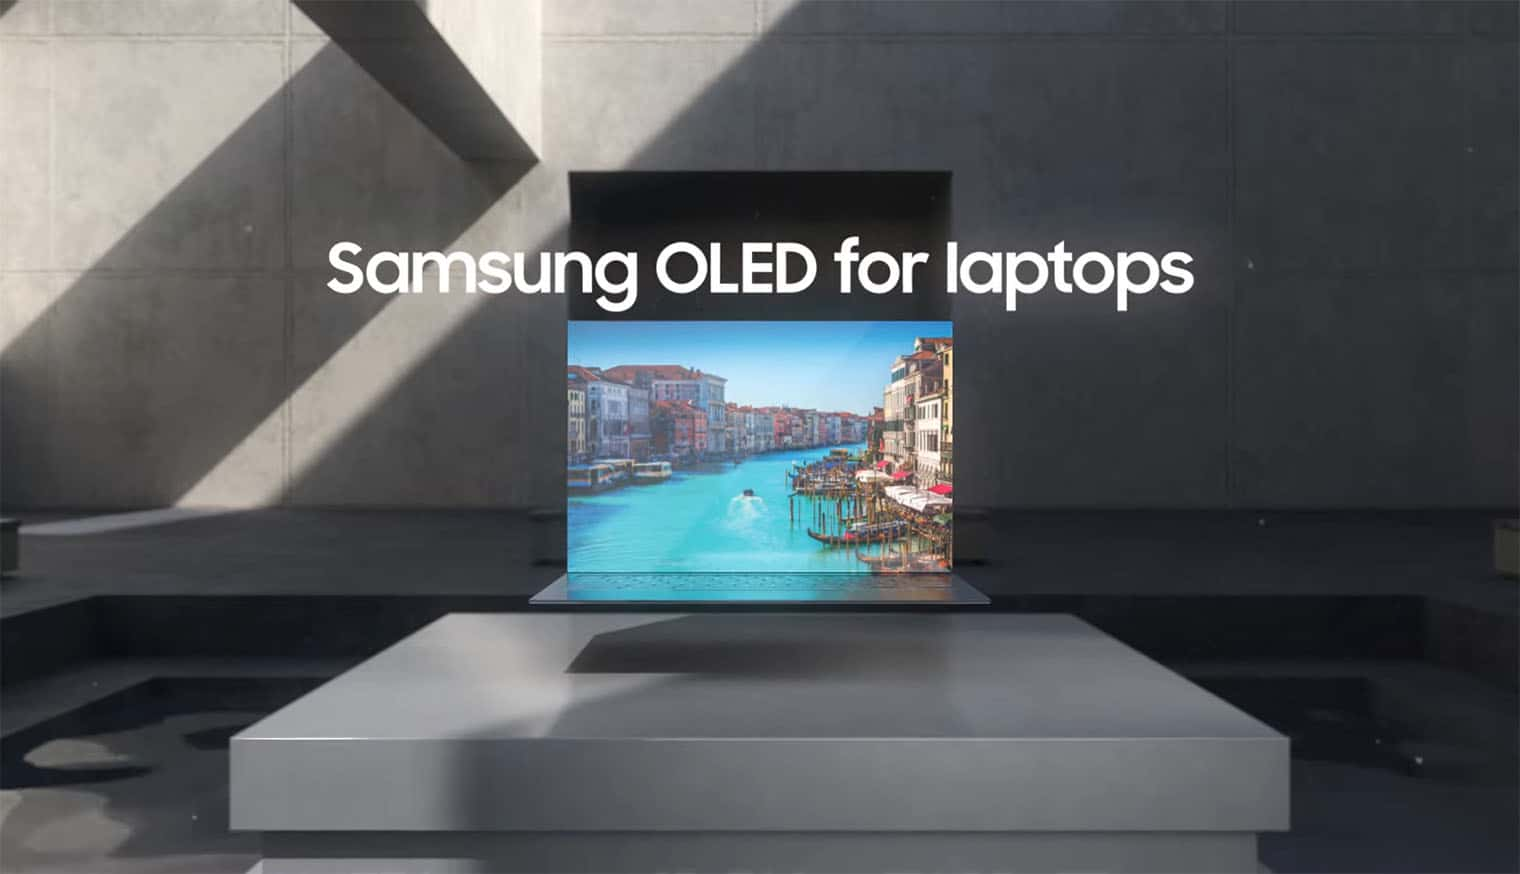 samsung oled for laptops